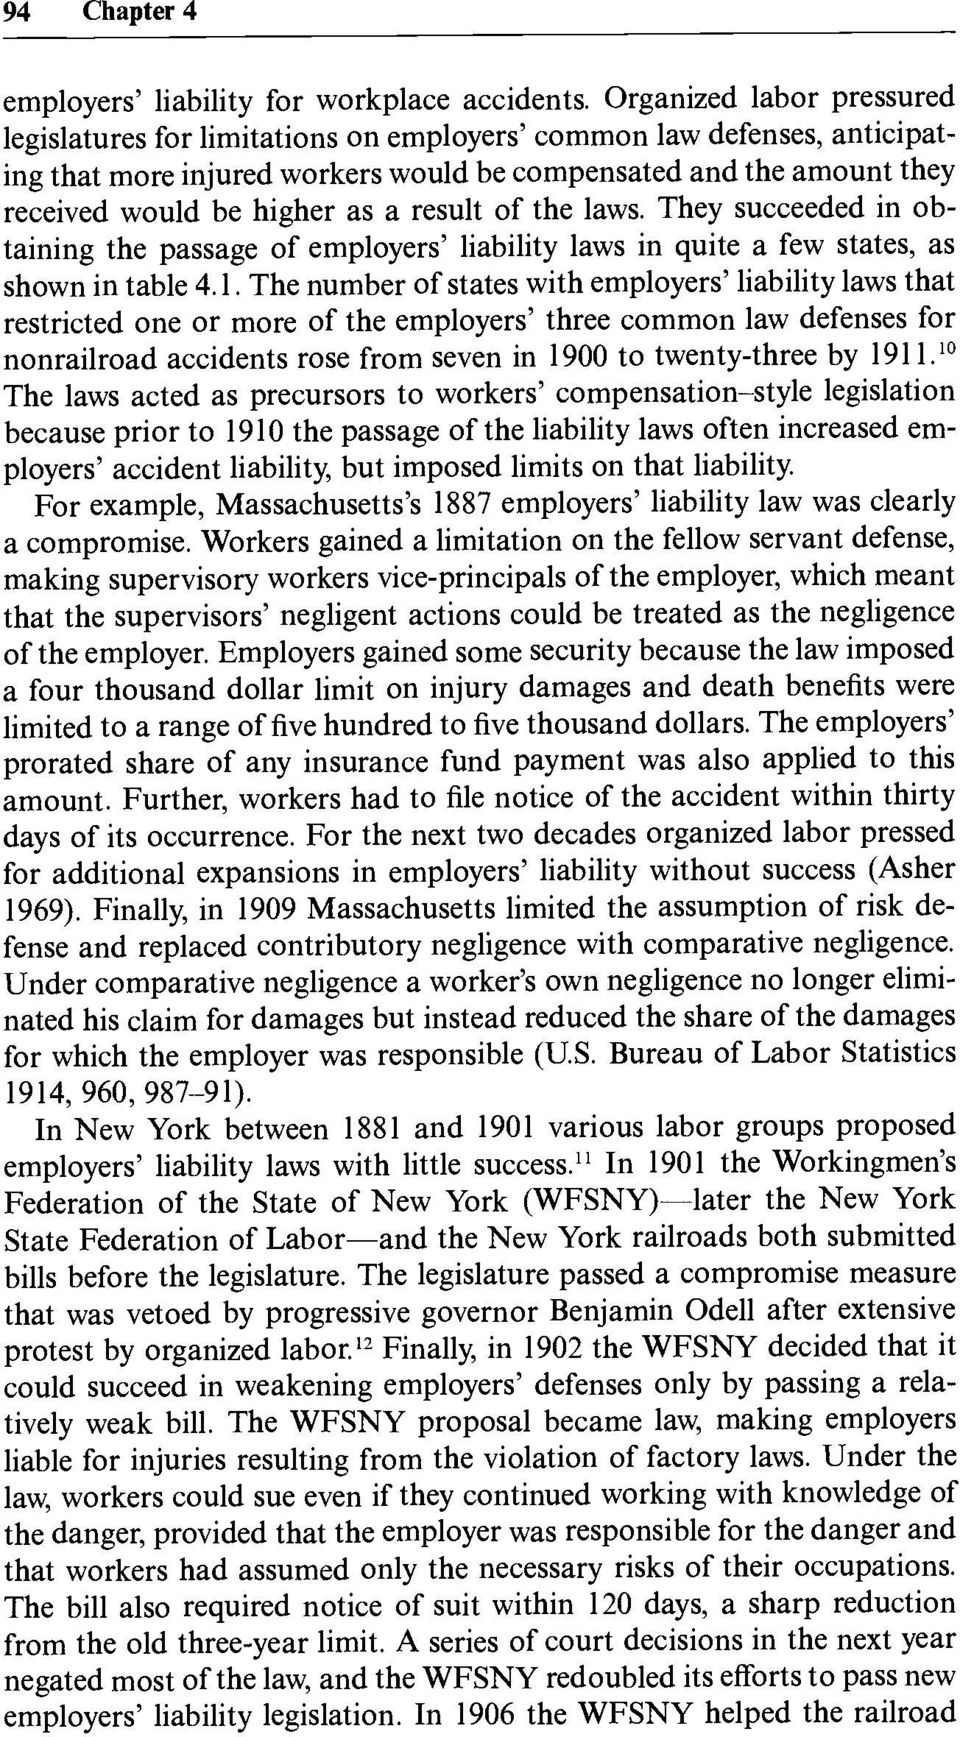 result of the laws. They succeeded in obtaining the passage of employers' liability laws in quite a few states, as shown in table 4.1.